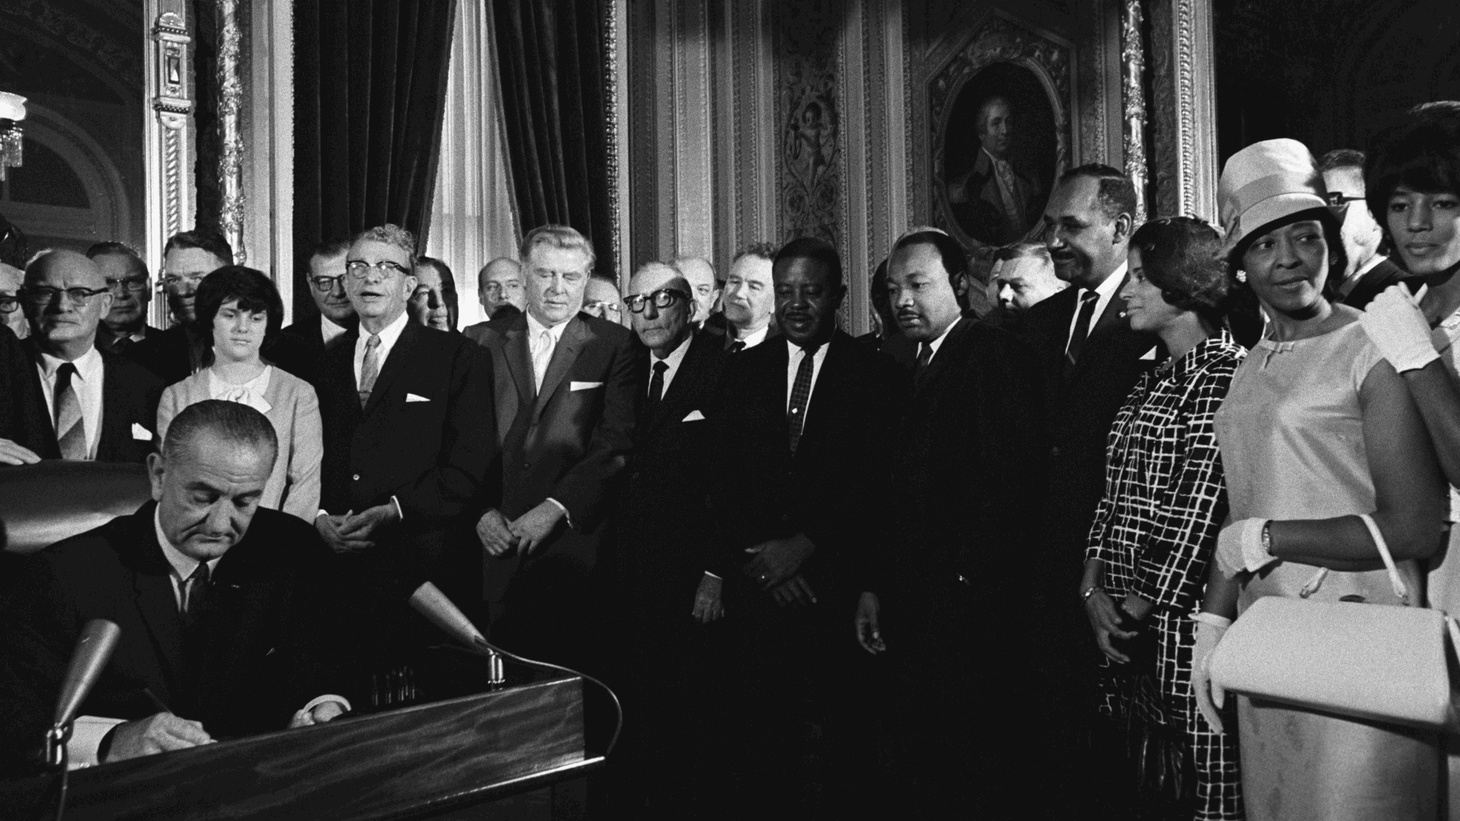 Fifty years ago today, President Lyndon Johnson signed the Voting Rights Act into law. Since then, there's been a near-constant battle over the law. Here in California, Secretary of State Alex Padilla announced that around 45,000 non-violent felons will be getting back their right to vote. And, Hollywood is a tough place for women and minorities on screen and off.